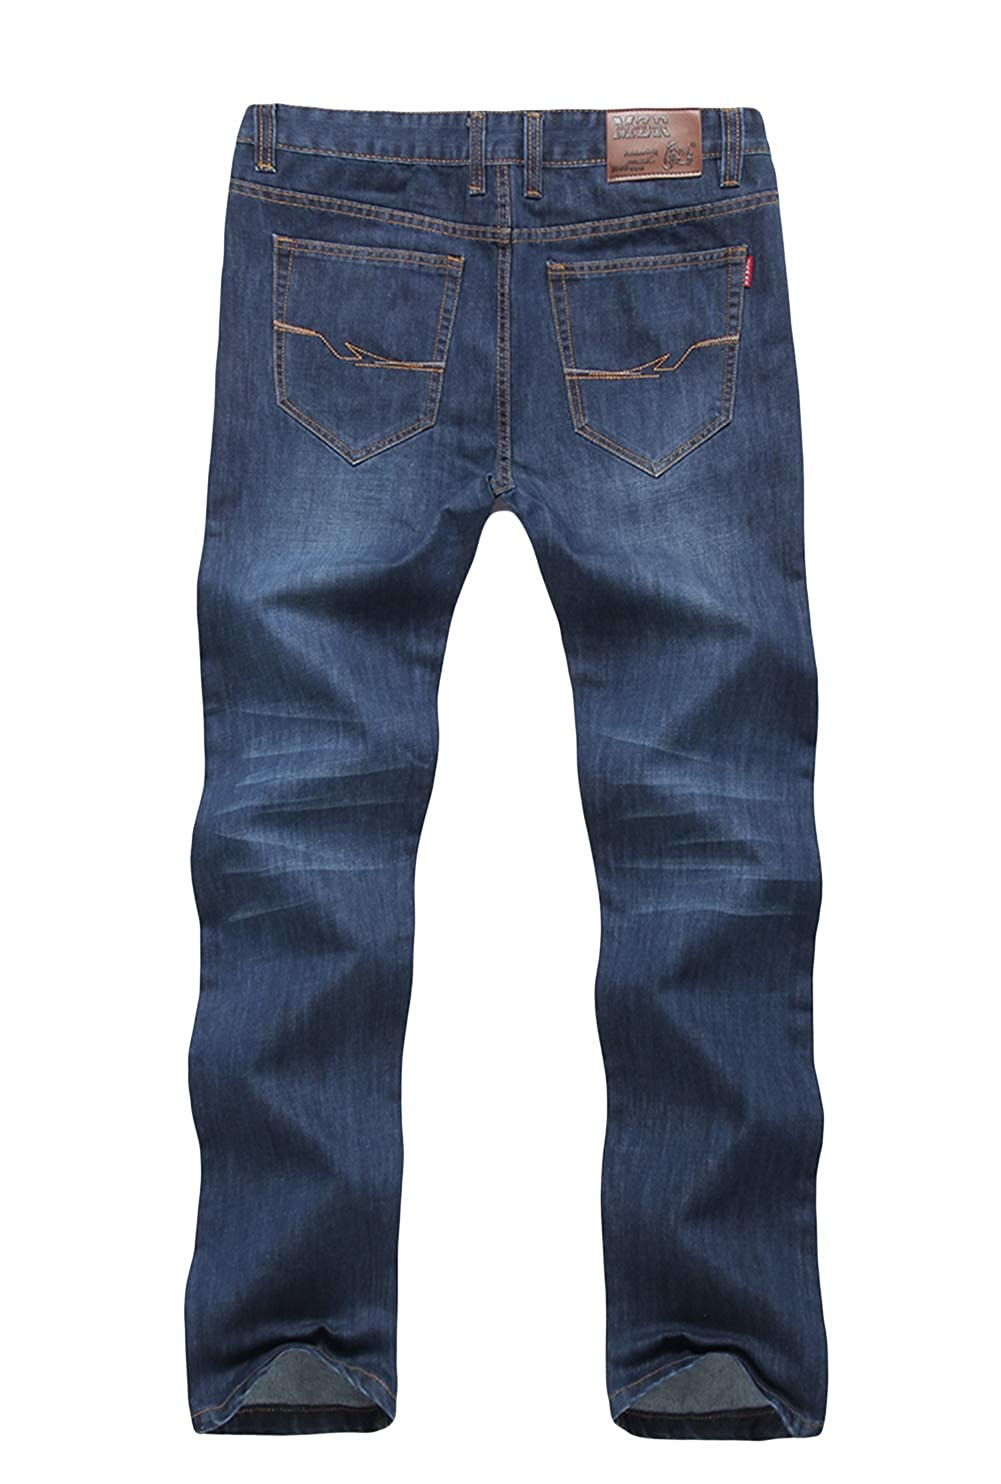 Icegrey Mens Jeans Trousers Straight Legs